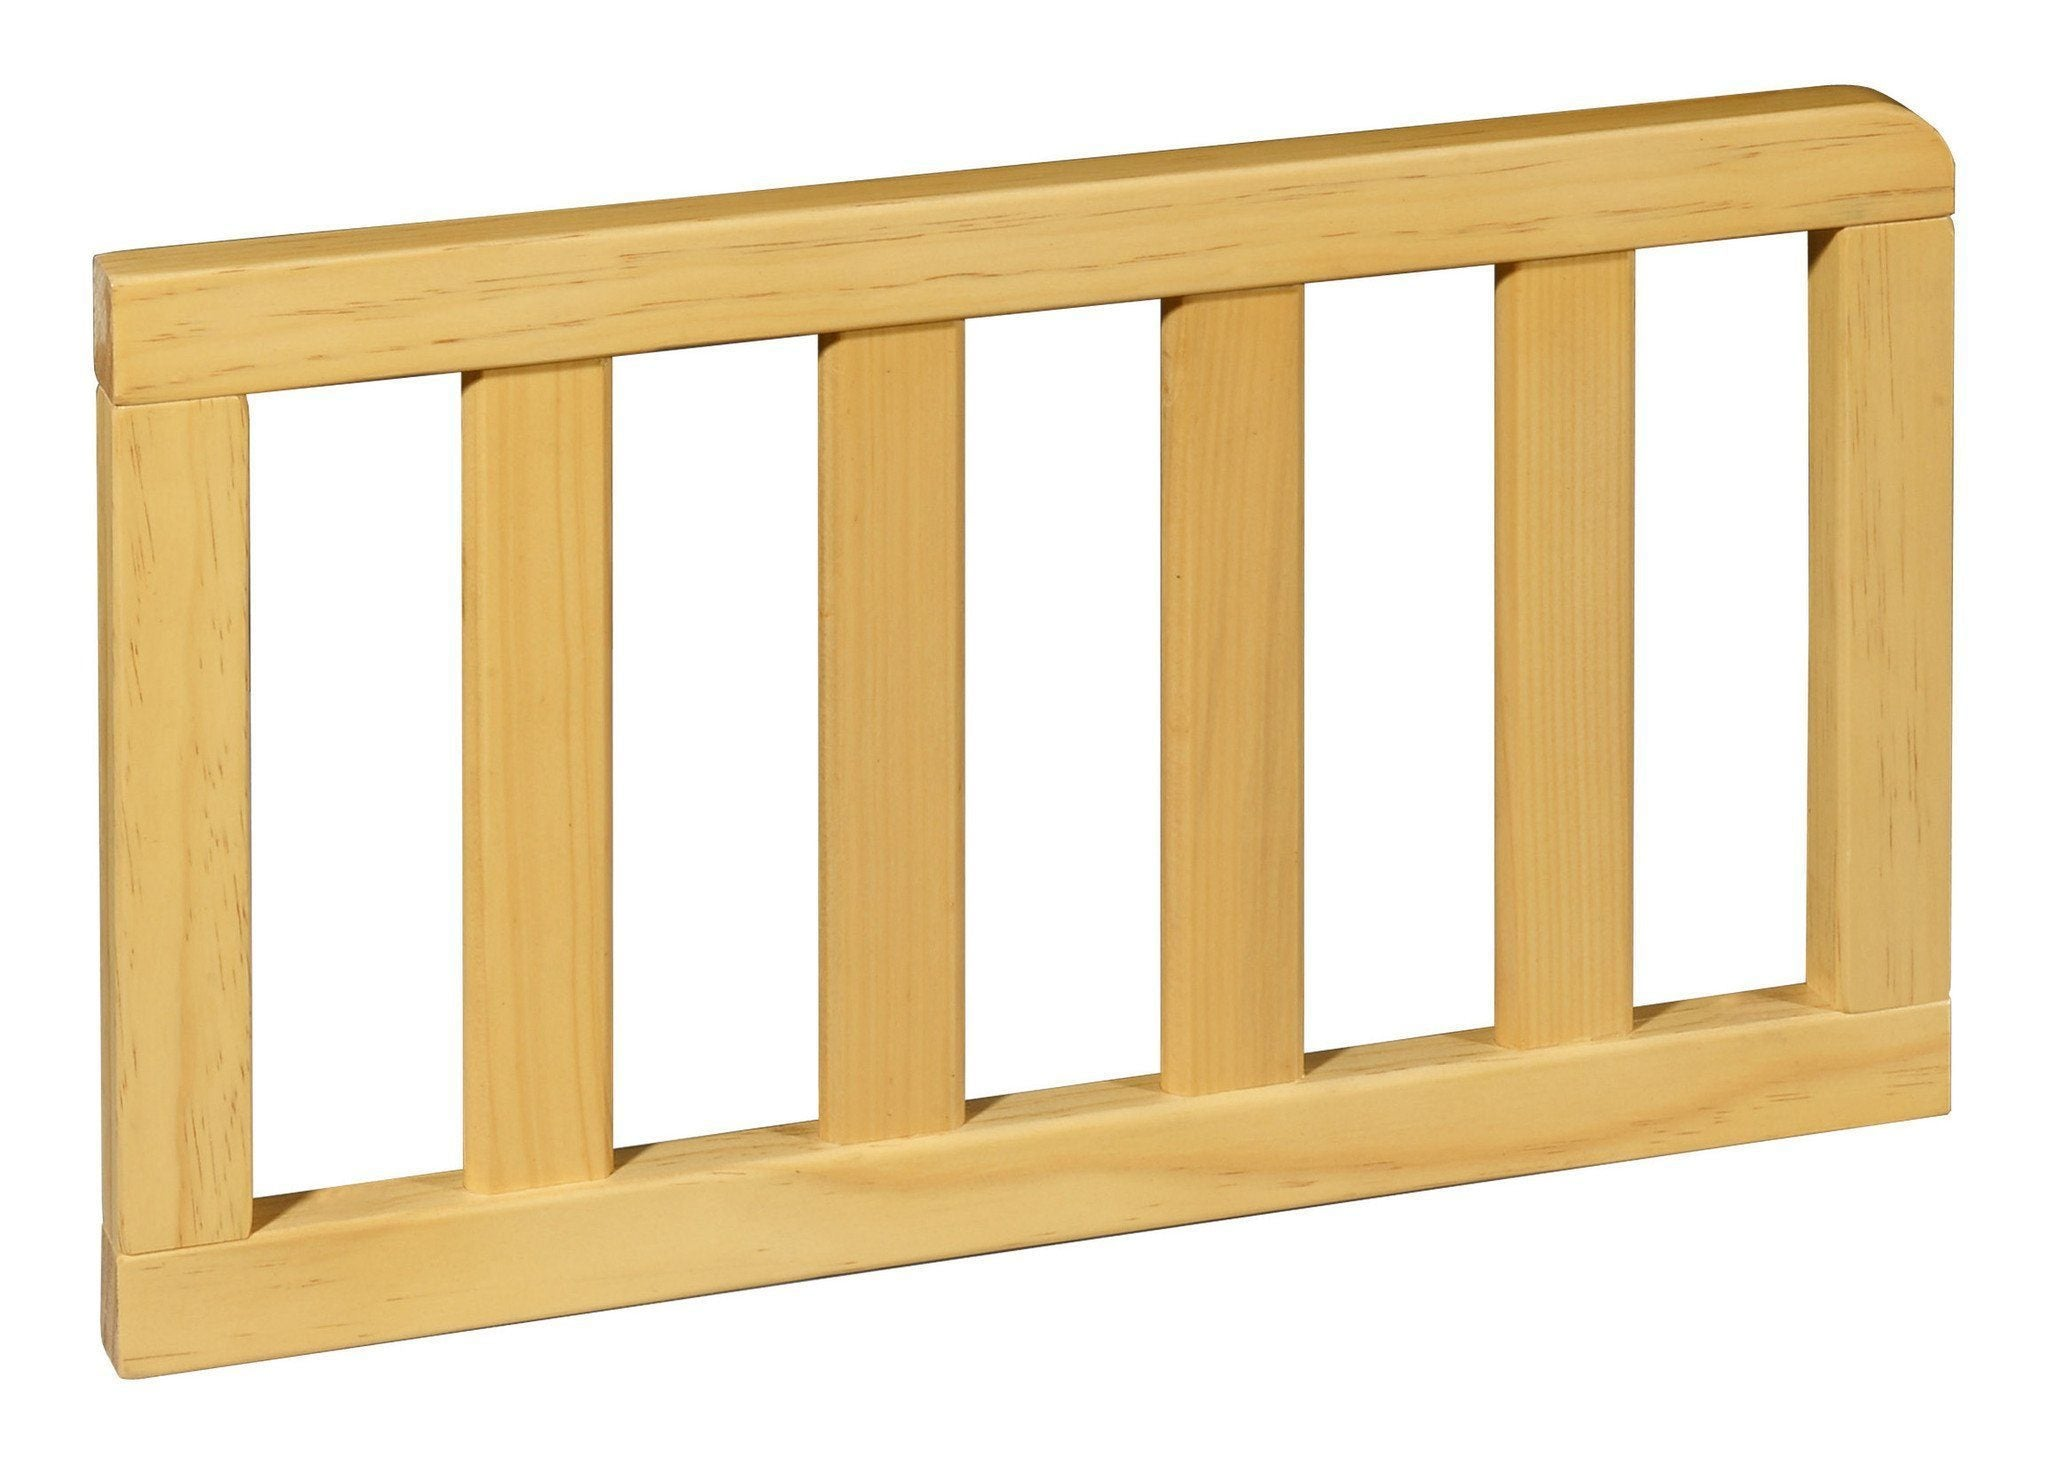 Delta Children Natural (260) Delta Guardrail (0082) b1b